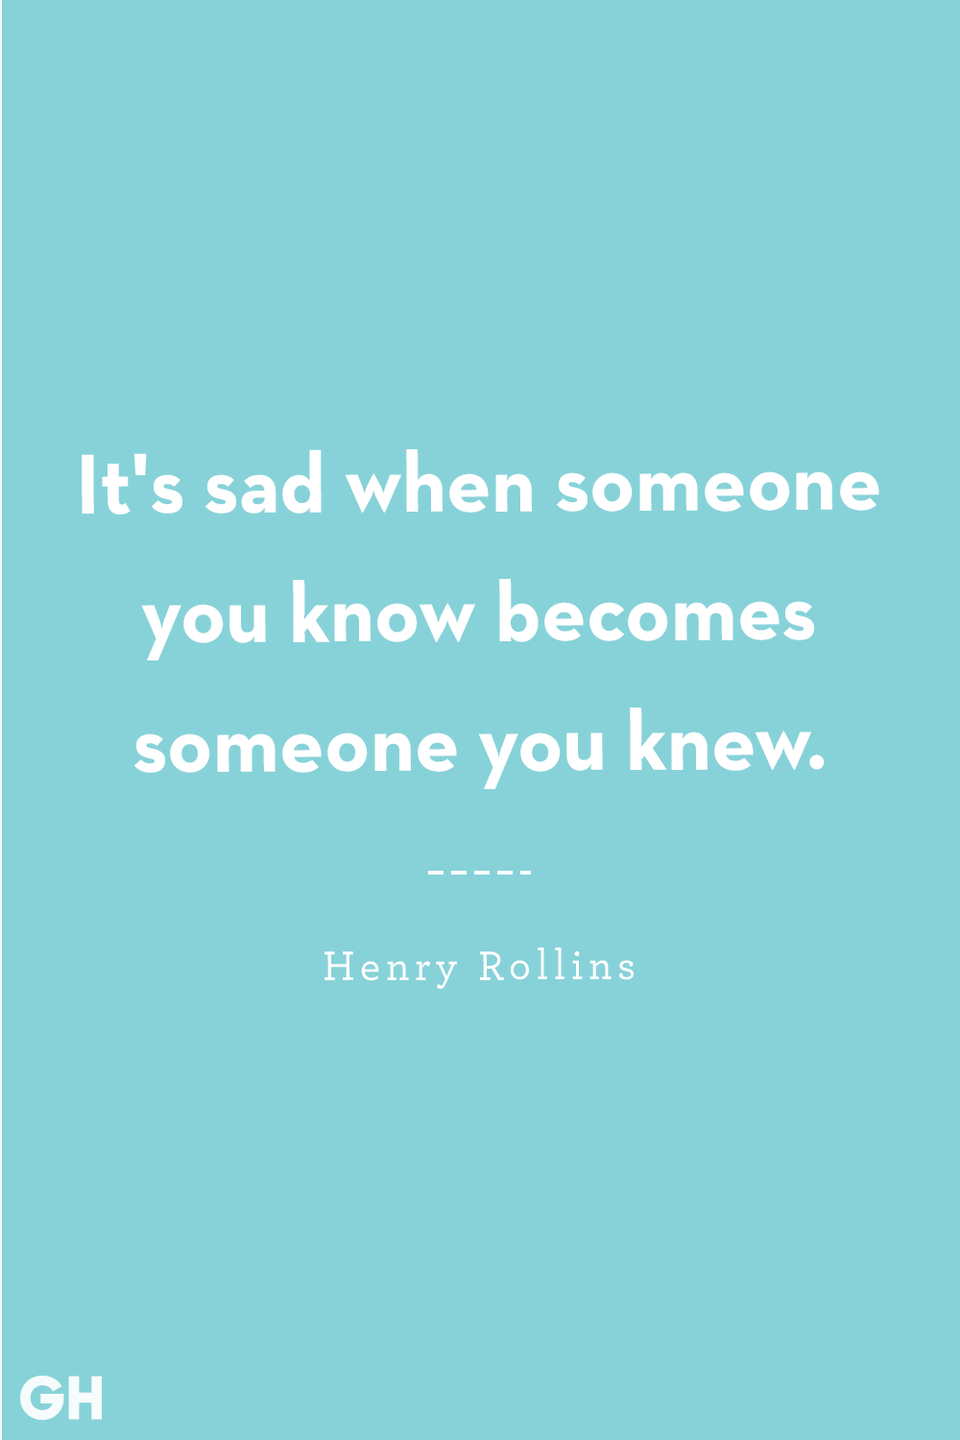 <p>It's sad when someone you know becomes someone you knew.</p>